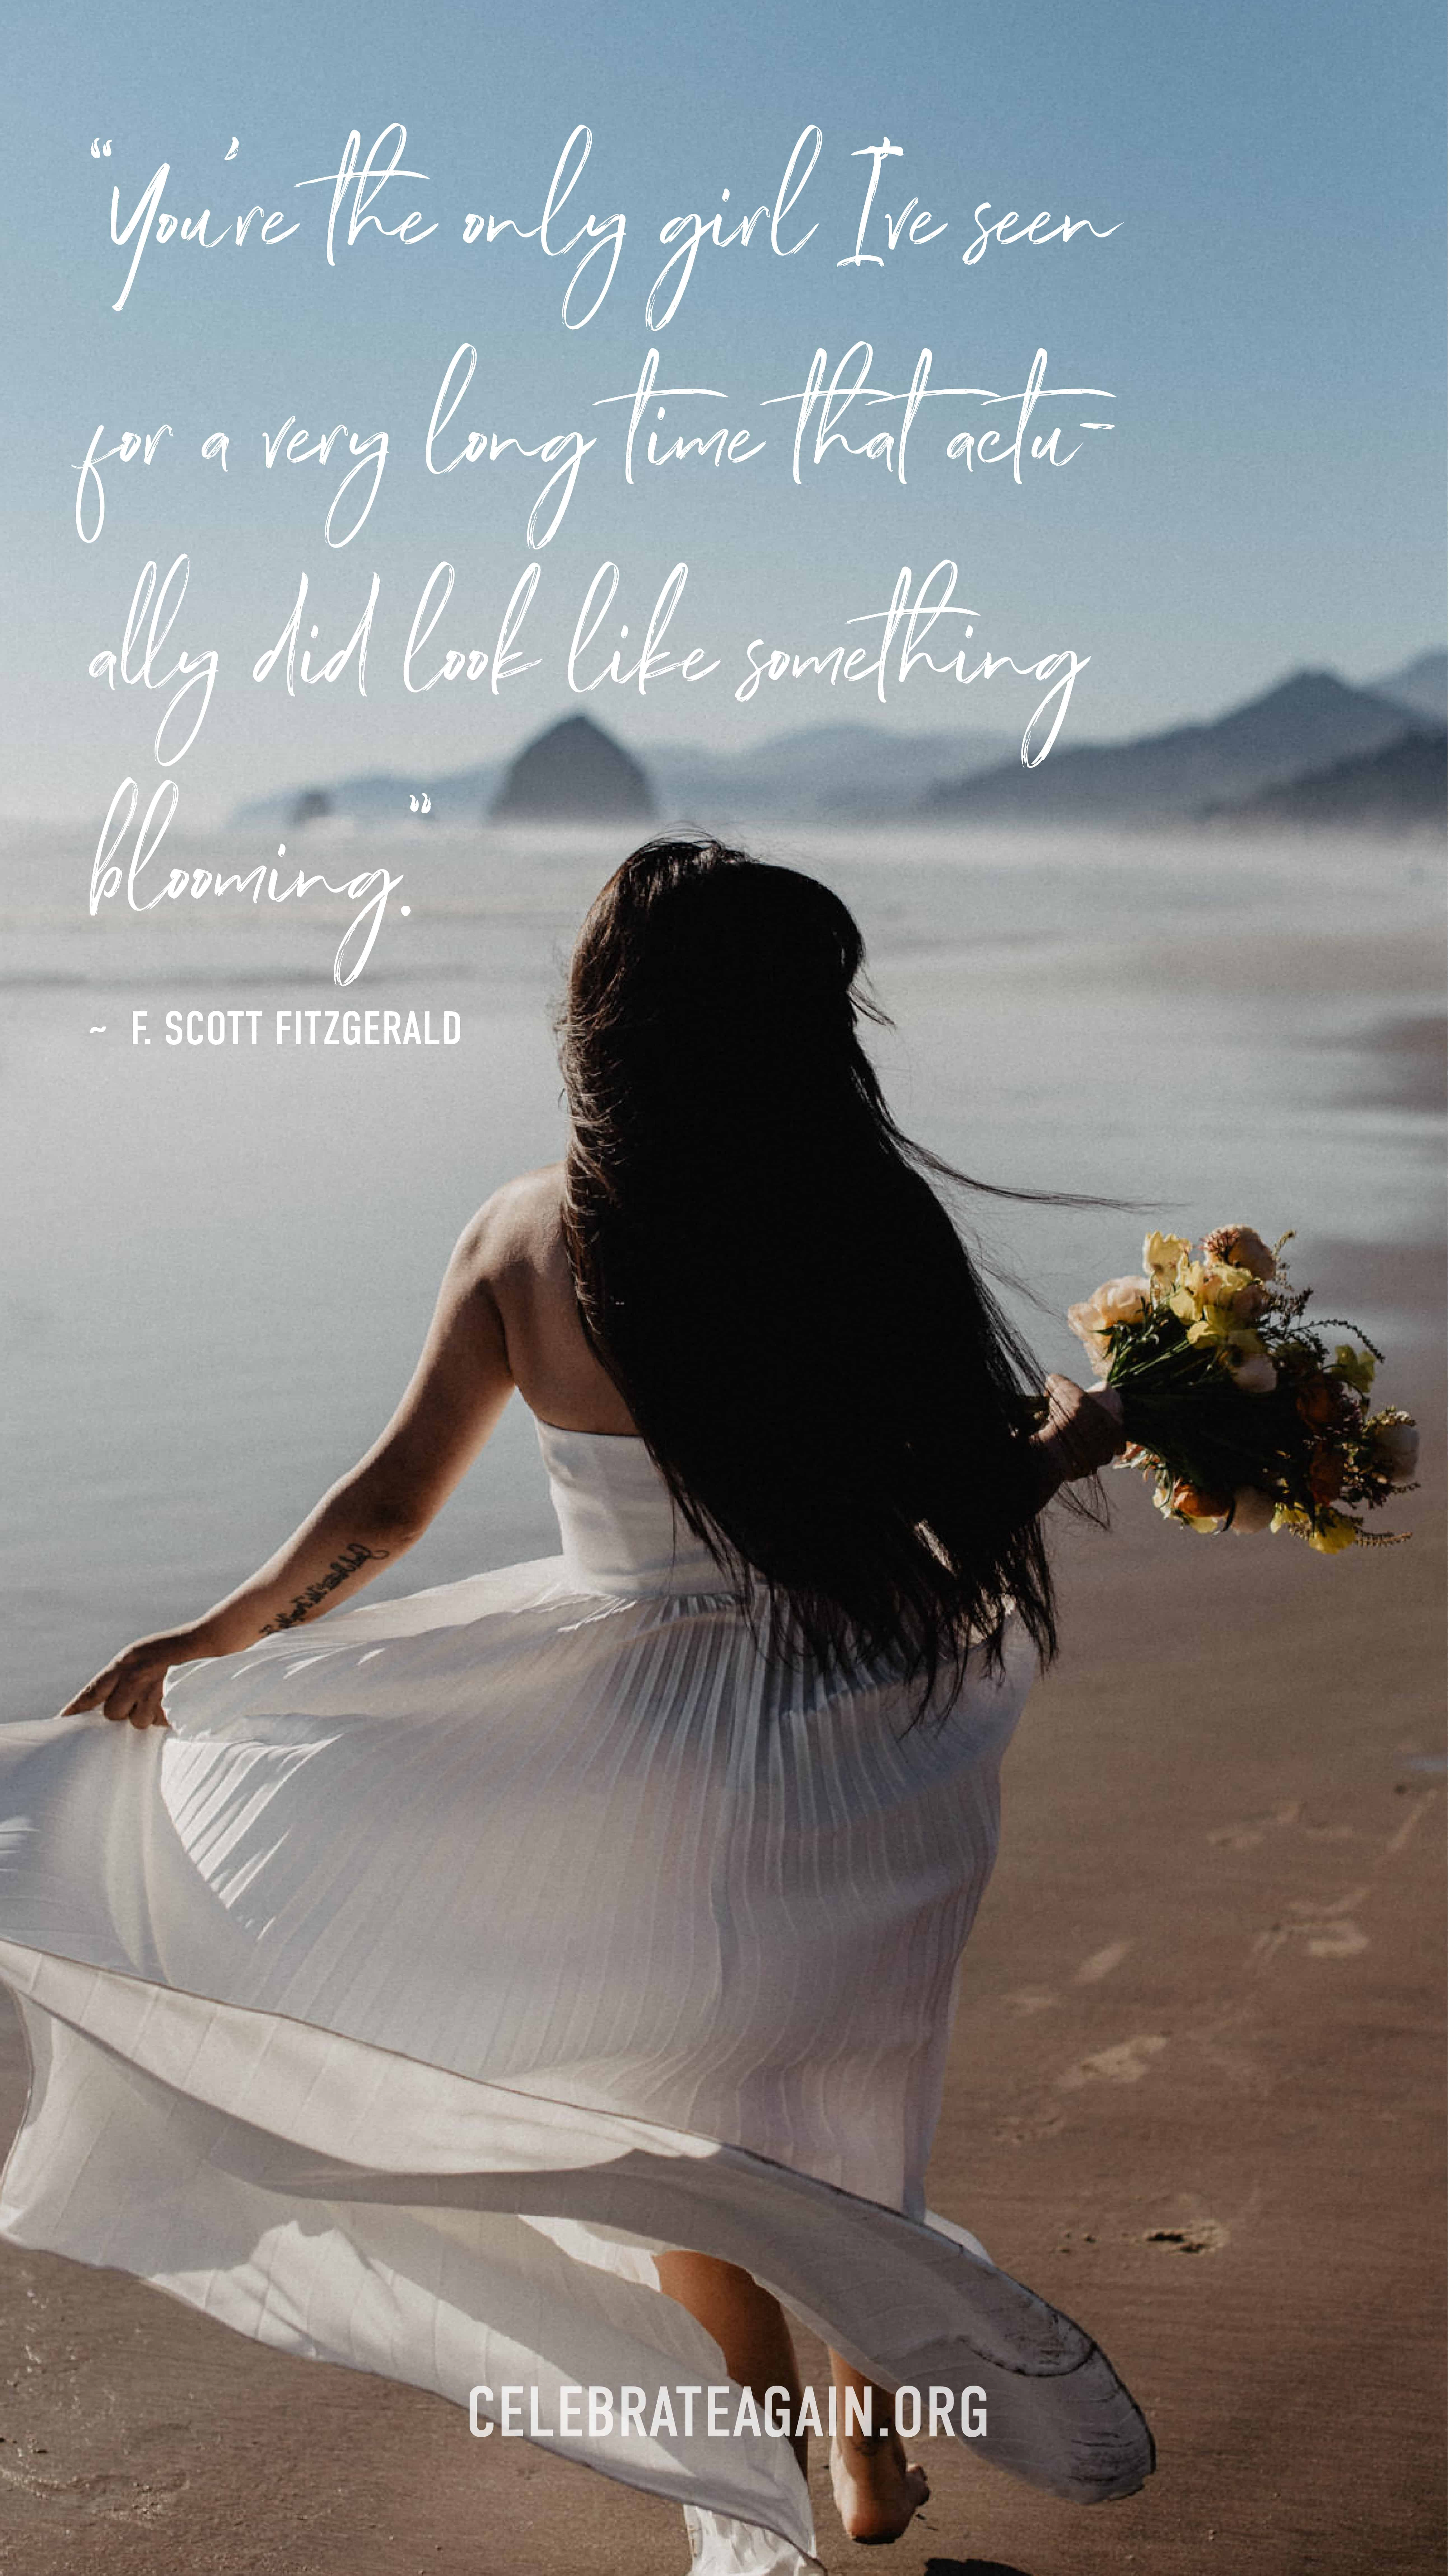 """romantic love quotes for her """"You're the only girl I've seen for a very long time that actually did look like something blooming."""" F. Scott Fitzgerald image of bride running away on a beach holding flowers image by celebrateagain.org"""